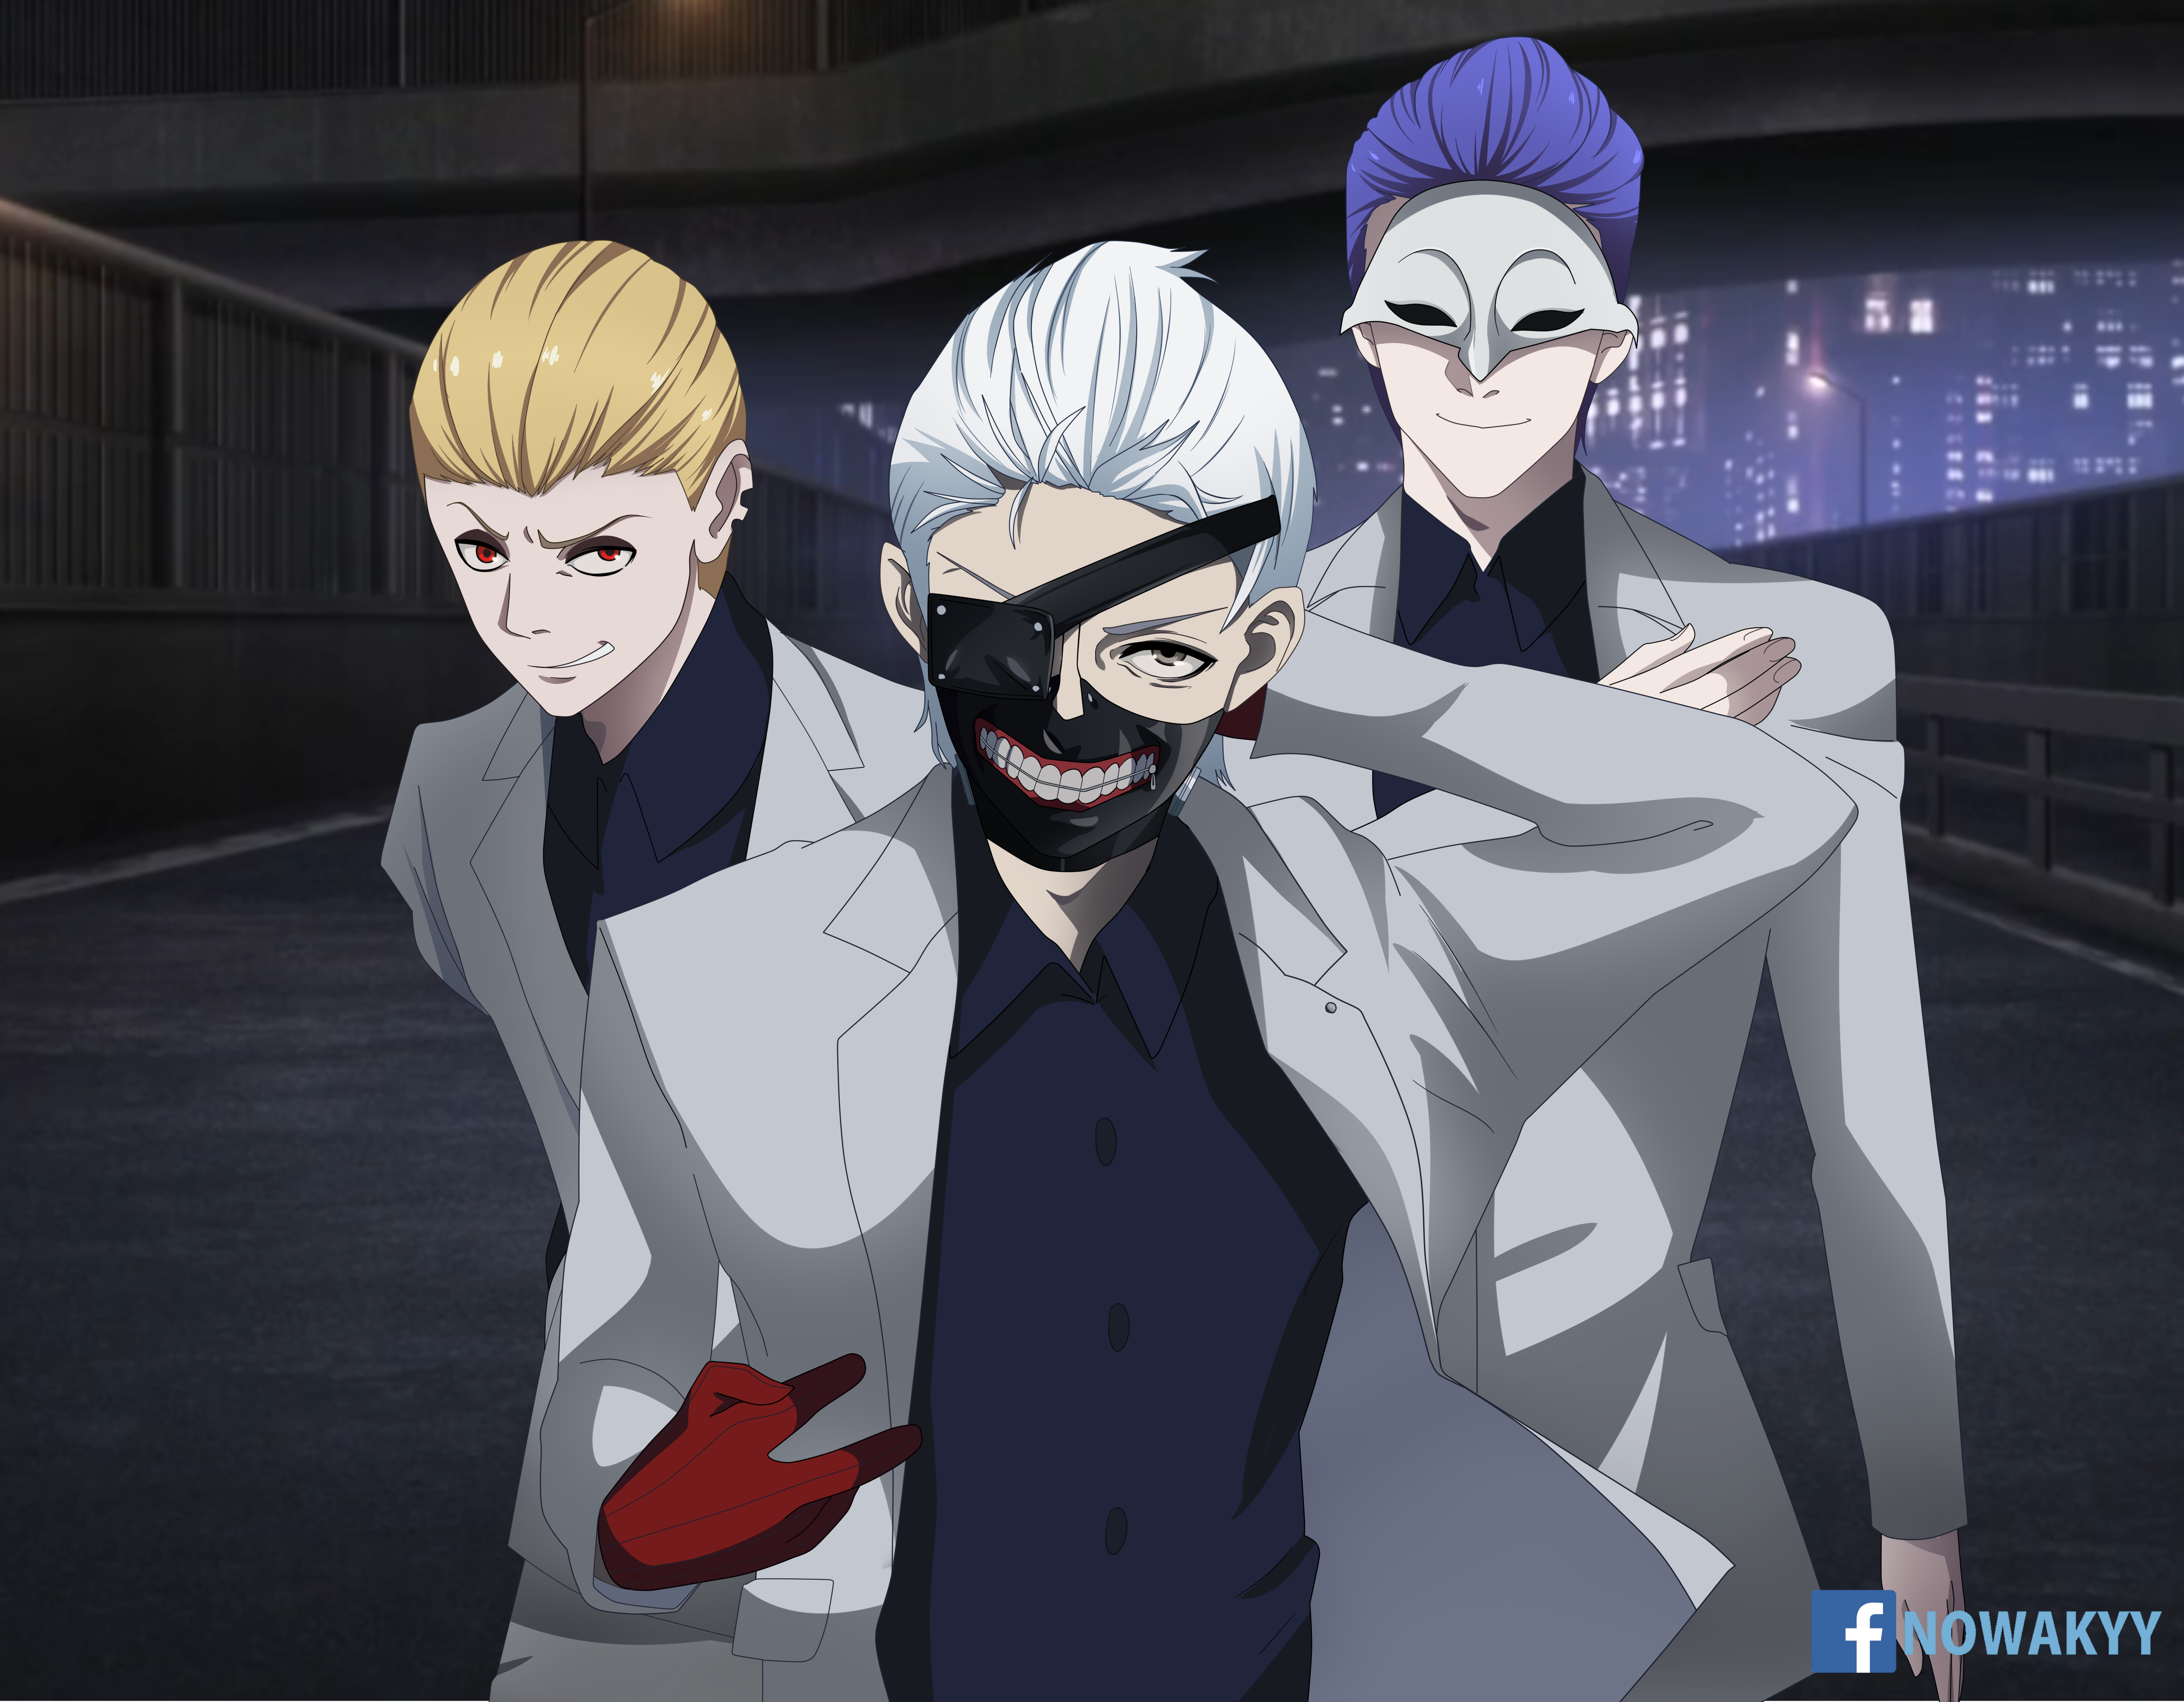 Pin by Crimson Black on Tokyo Ghoul Re Tokyo ghoul